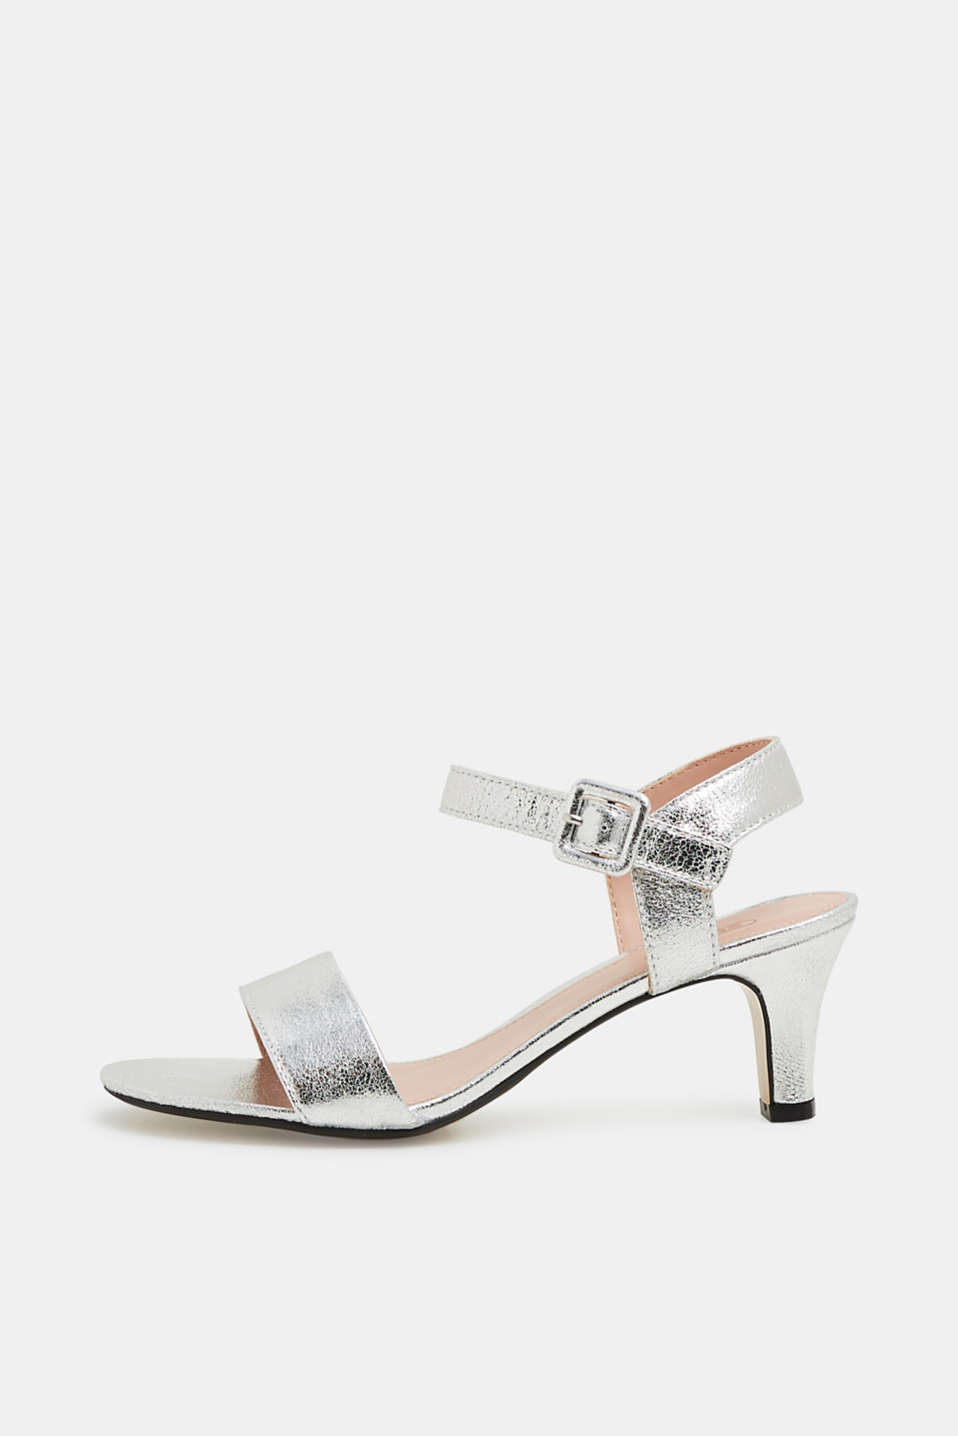 Esprit - Sandals in crushed faux leather